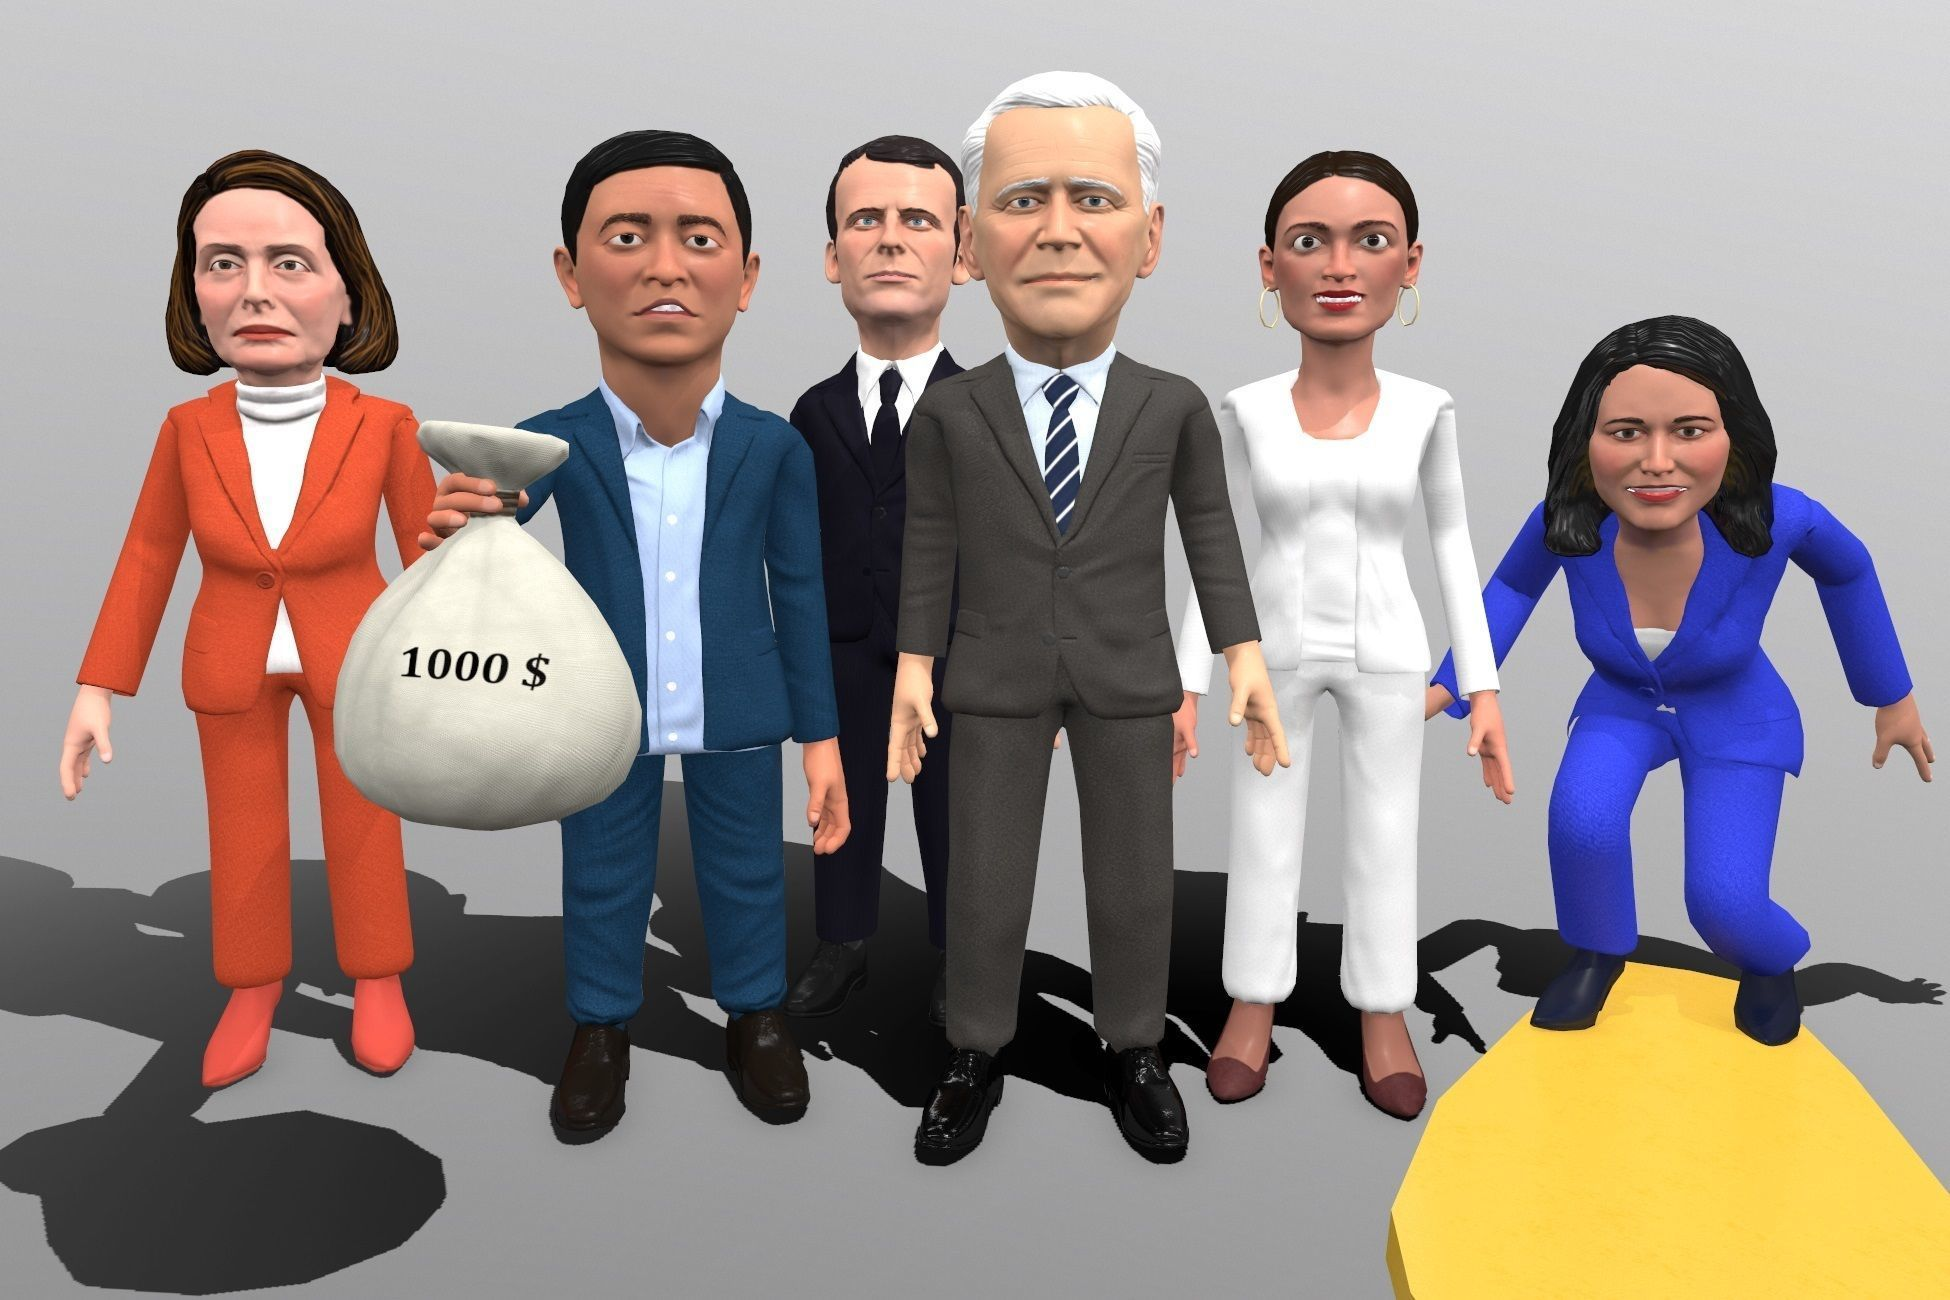 Political caricatures pack 4